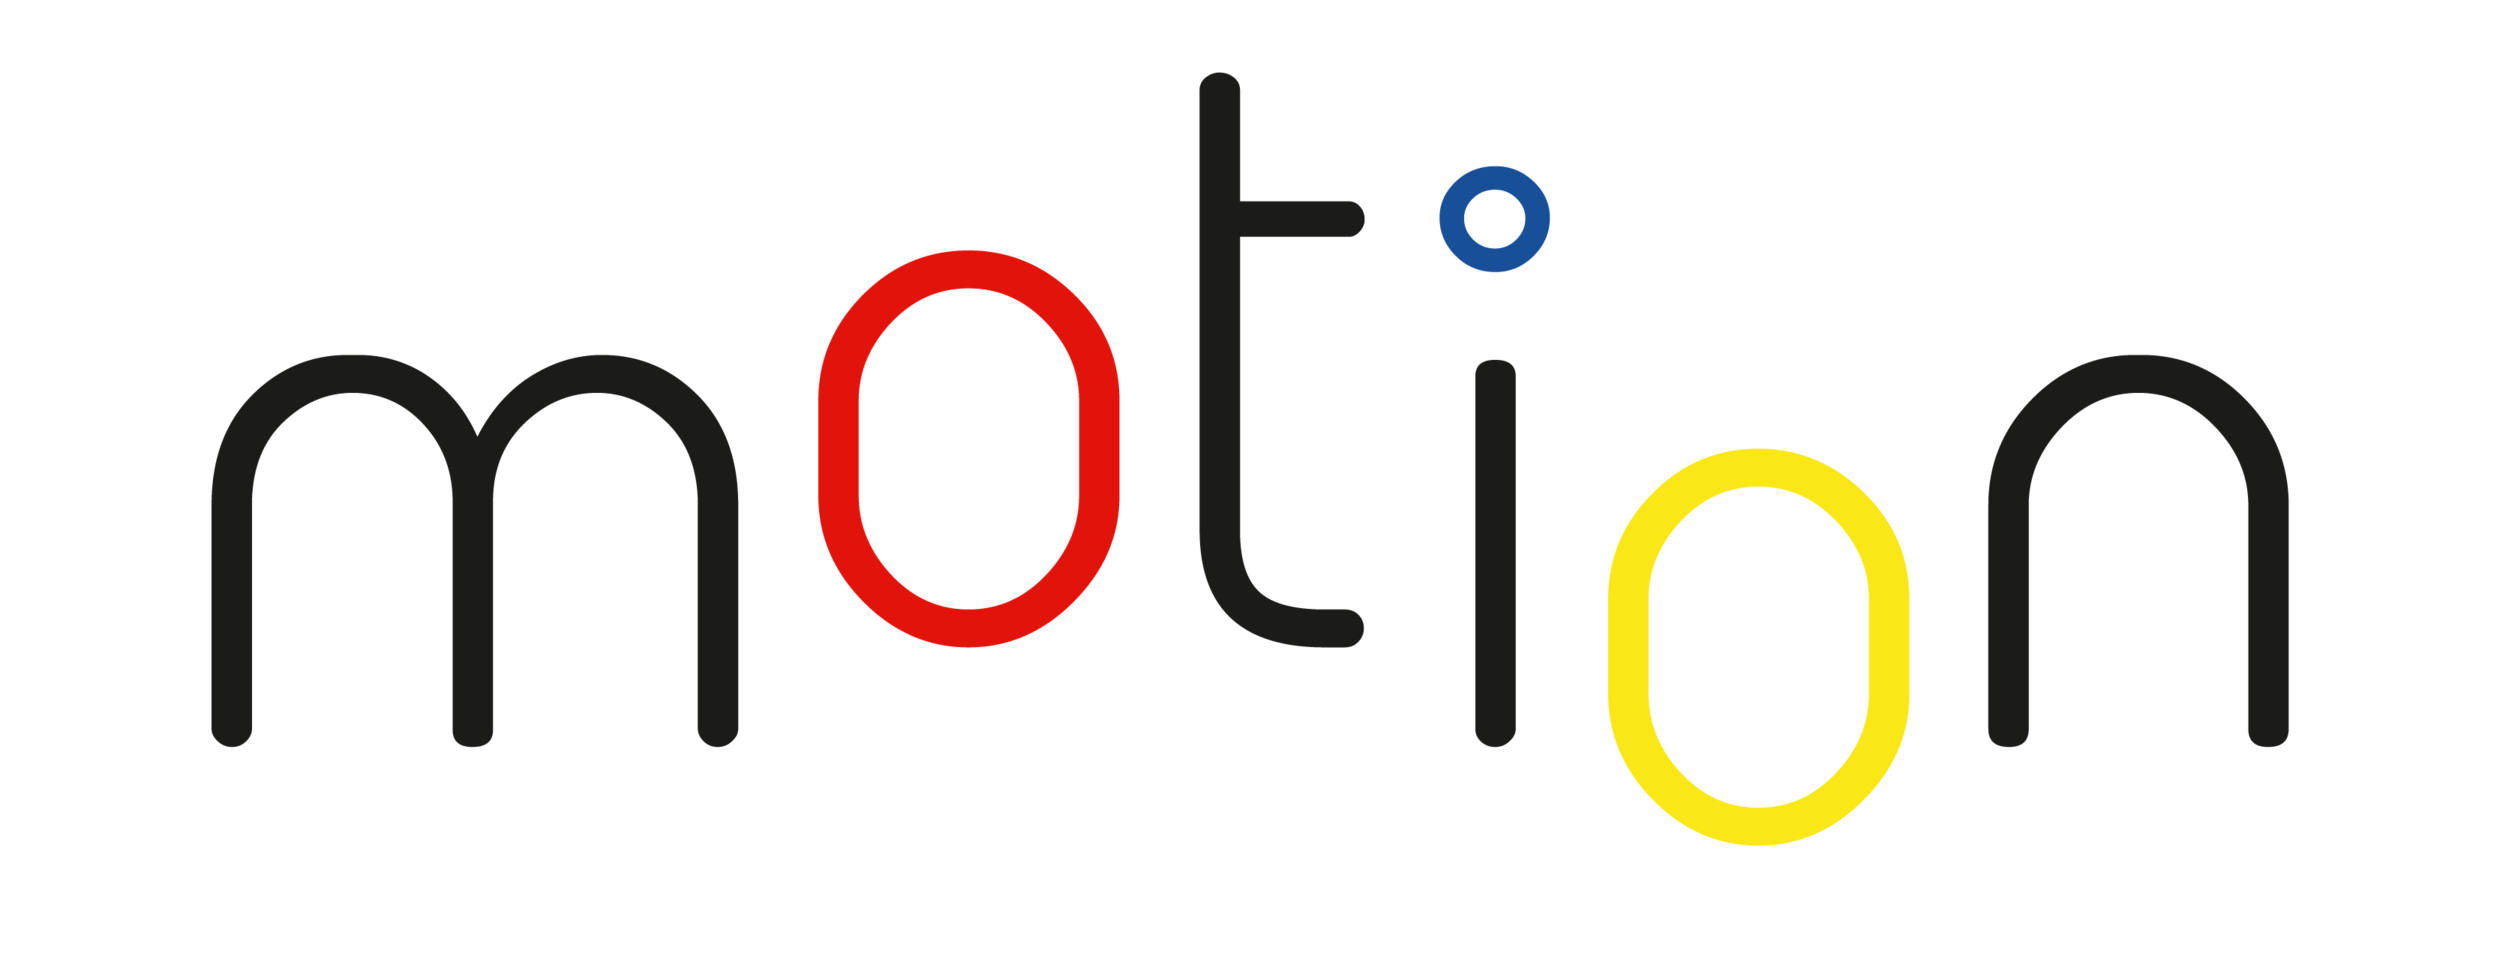 MOTION logo - children behavior monitoring-03.png